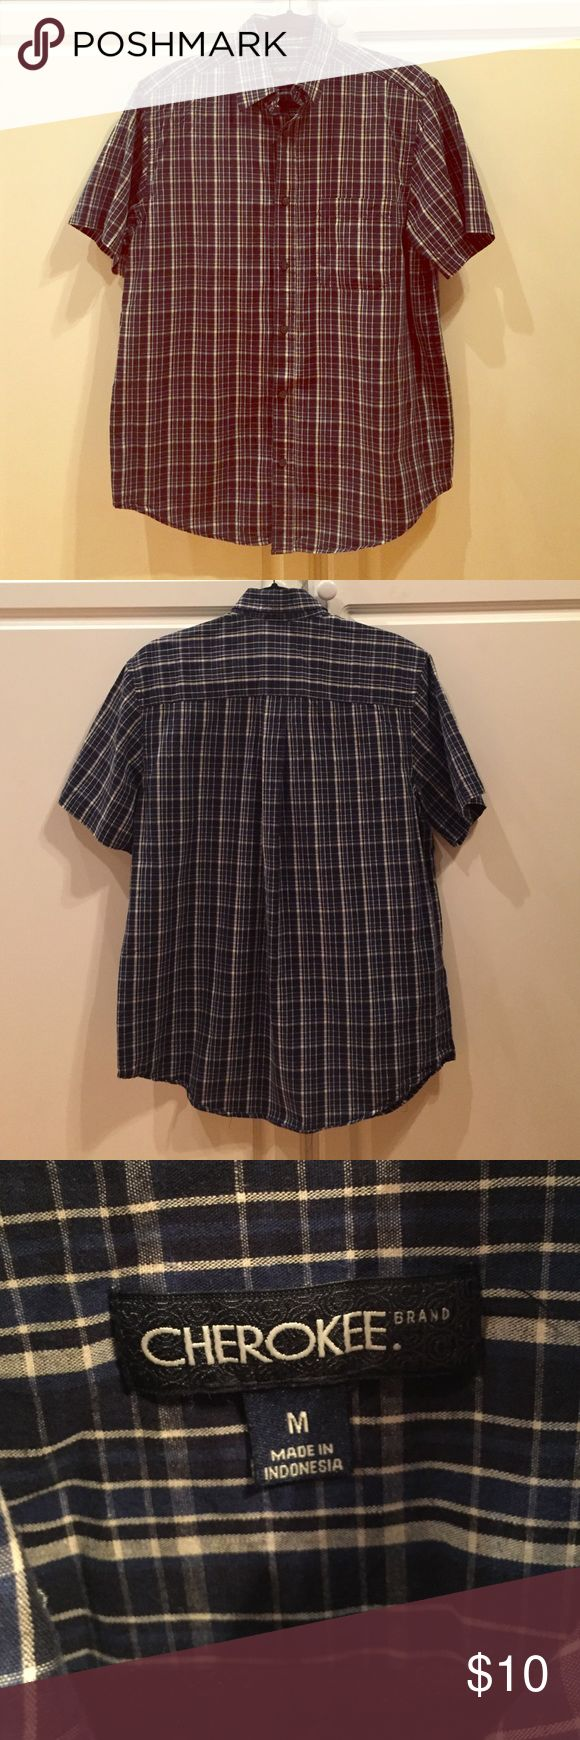 Cherokee Brand Blue Black Plaid Shirt Medium Men's size Medium Plaid Casual Button Down Shirt with a Navy Blue, Black and White Plaid Print. Excellent condition, only worn two or three times. No rips, stains or tears and comes from a smoke free home. Cherokee Shirts Casual Button Down Shirts